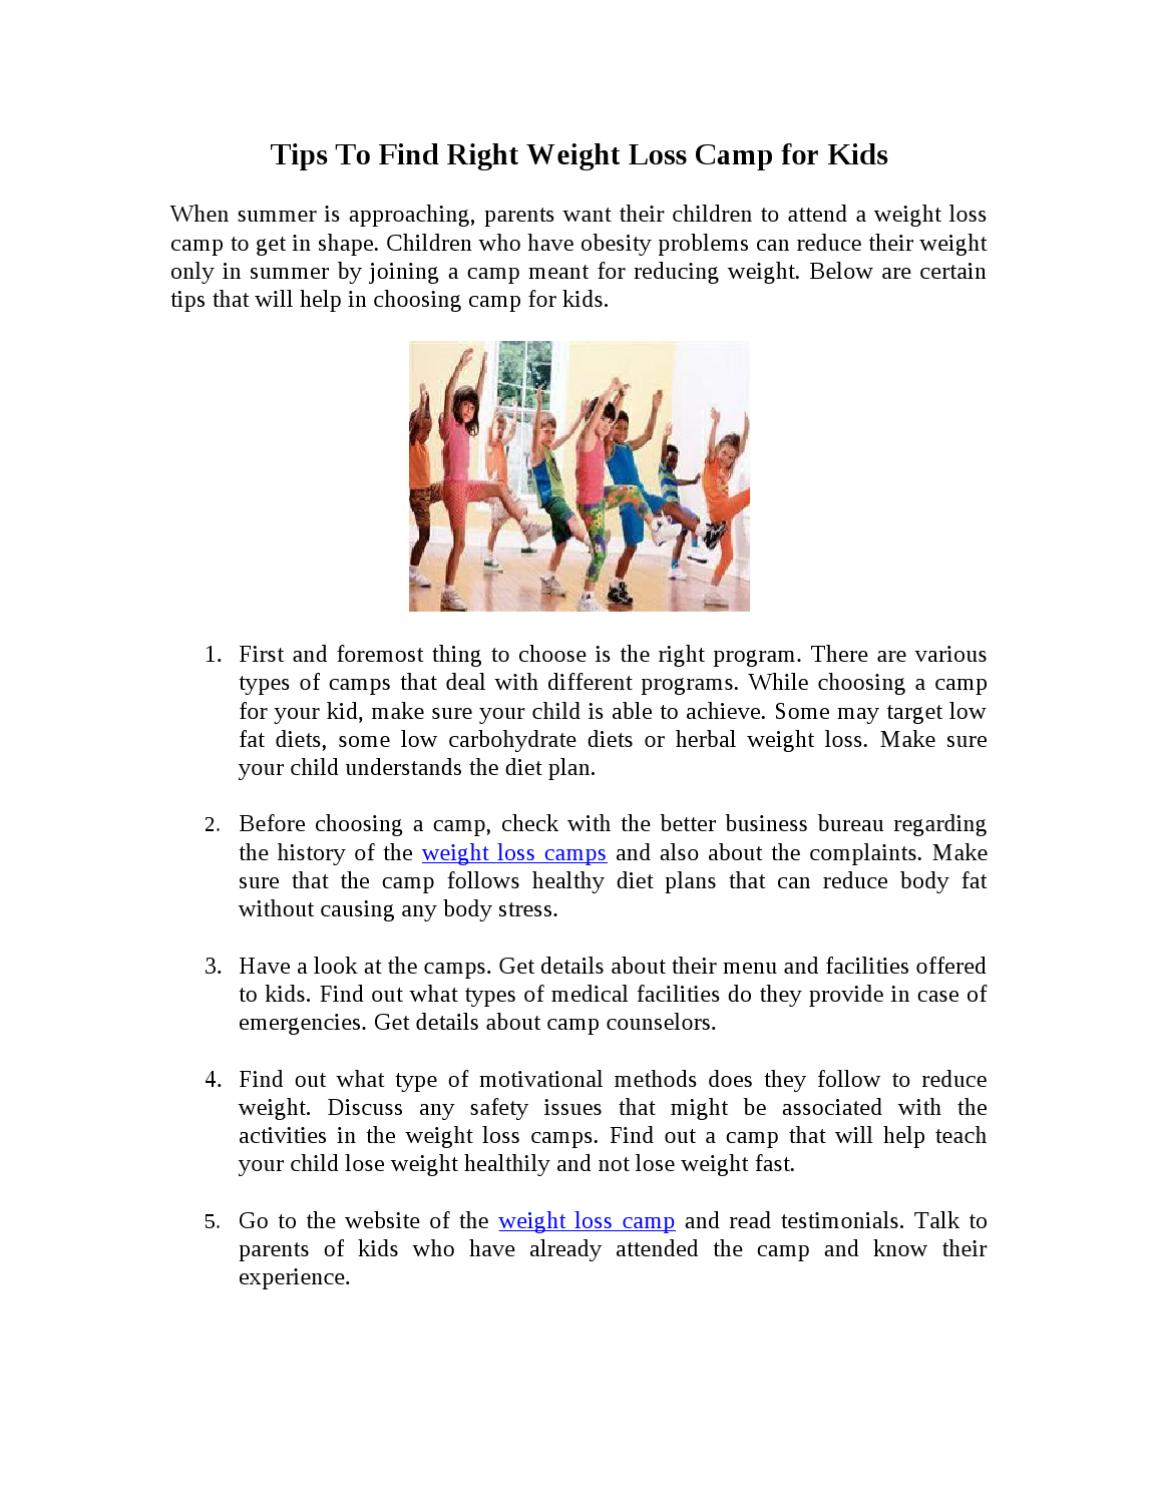 Tips To Find Right Weight Loss Camp For Kids By Rachel Mathew Issuu